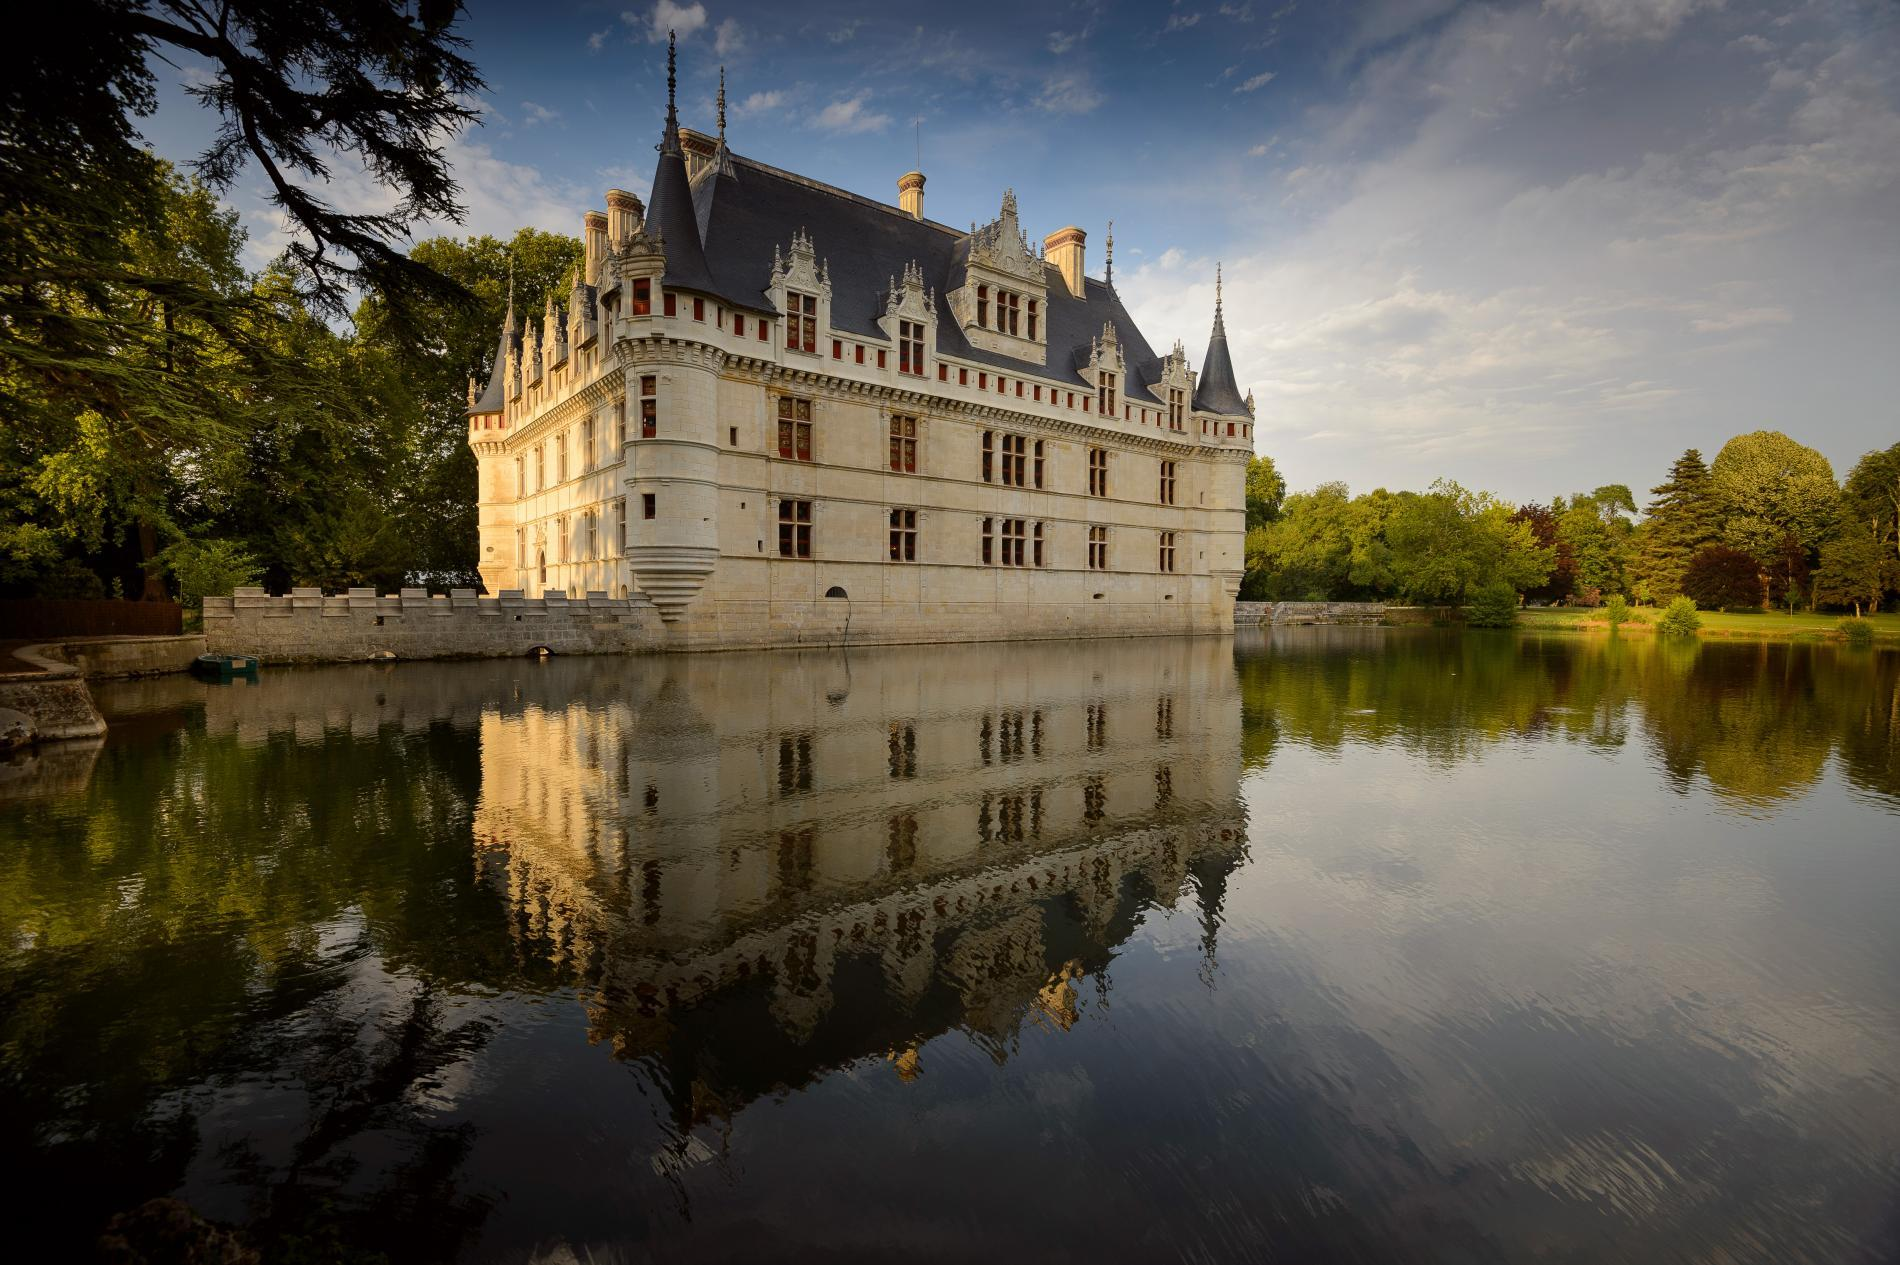 Castle of Azay-le-Rideau